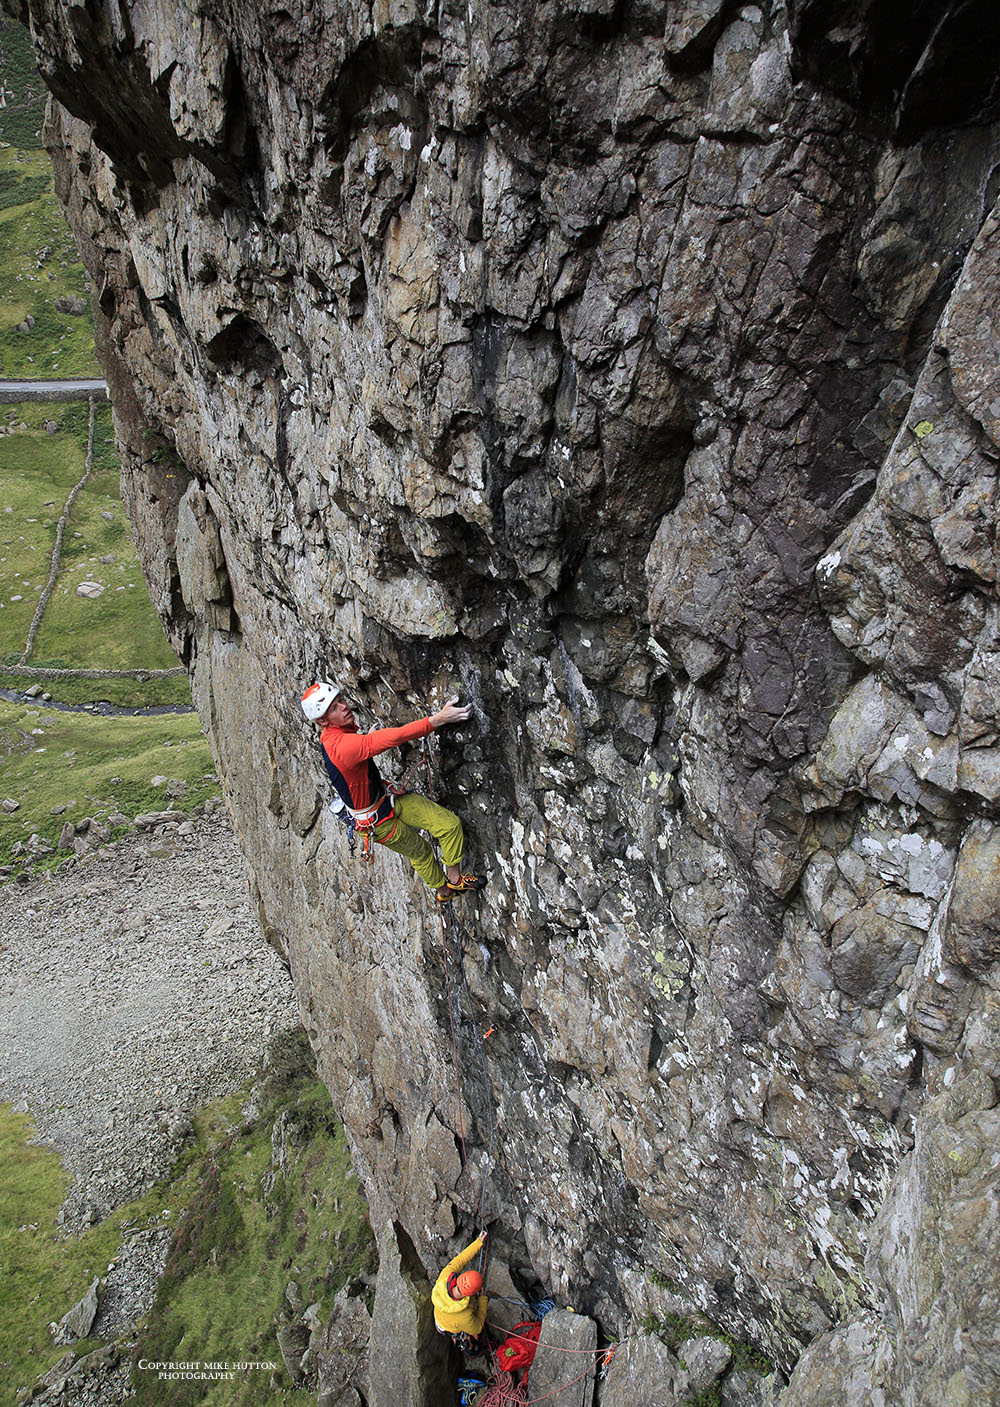 The 39 Slaps (E7 6c), Scimitar Ridge, Llanberis Pass. Photo: Mike Hutton